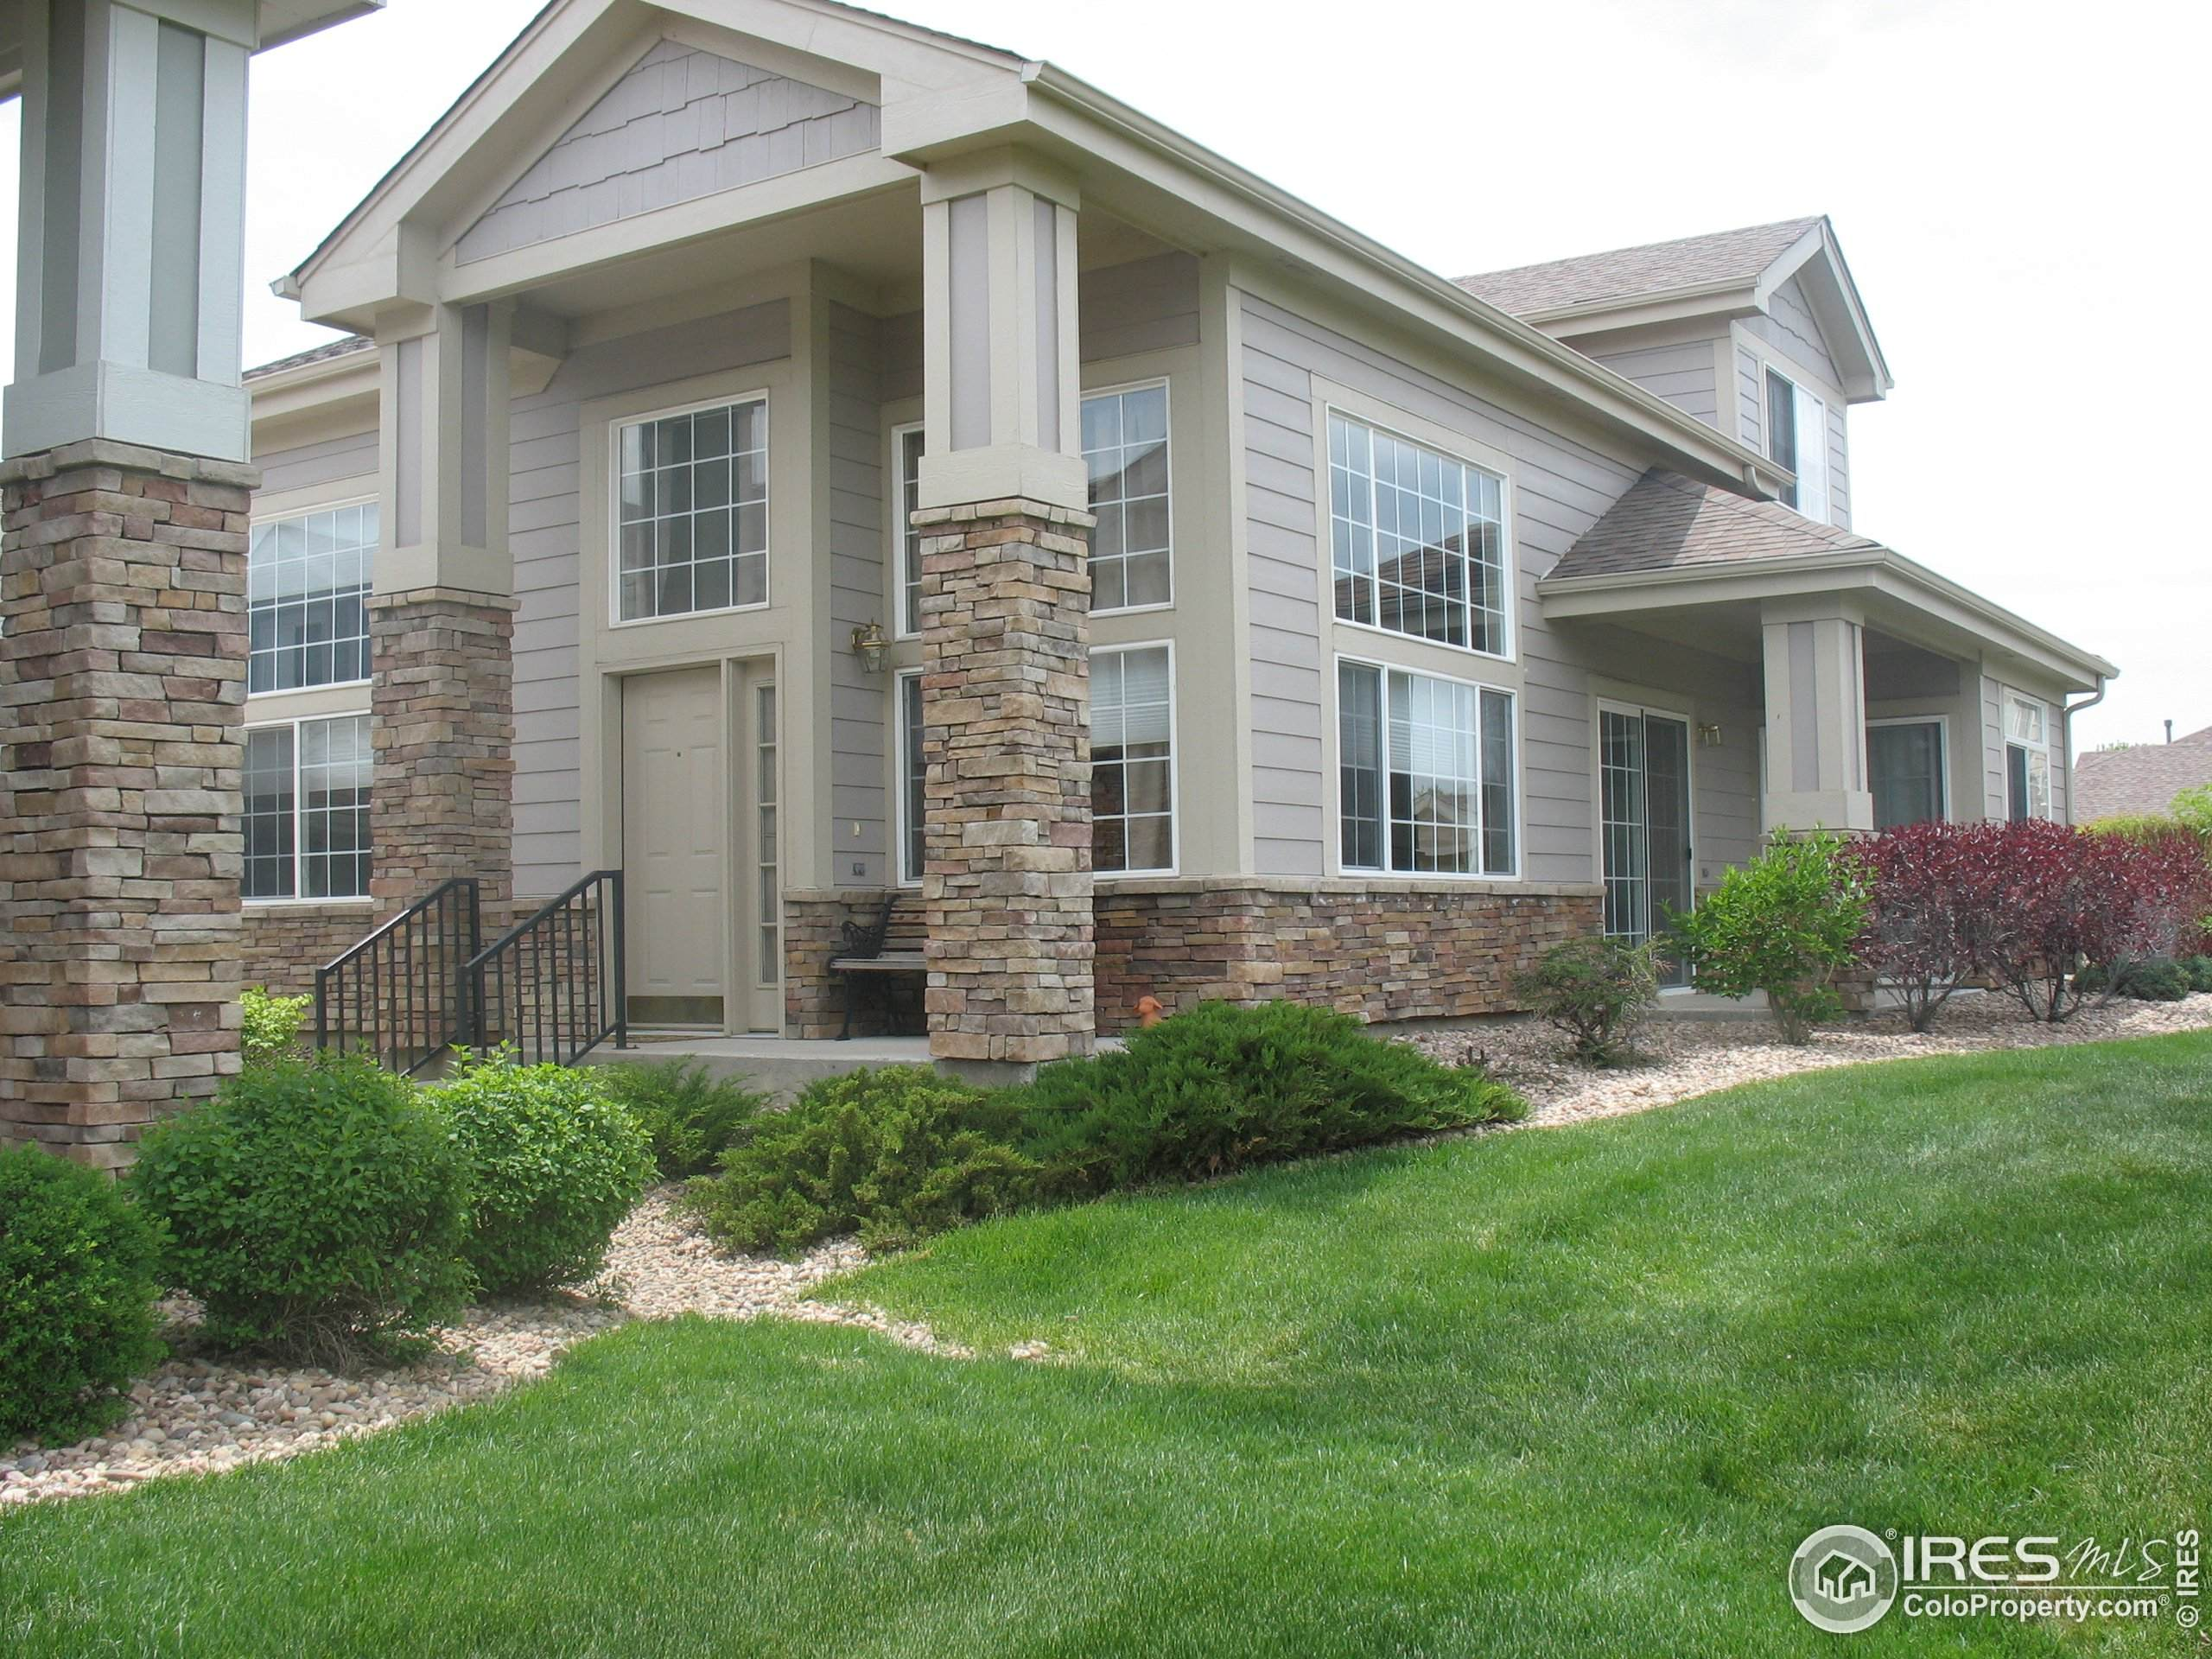 889 Stagecoach Trl, Lyons, CO 80540 (MLS #935795) :: Jenn Porter Group